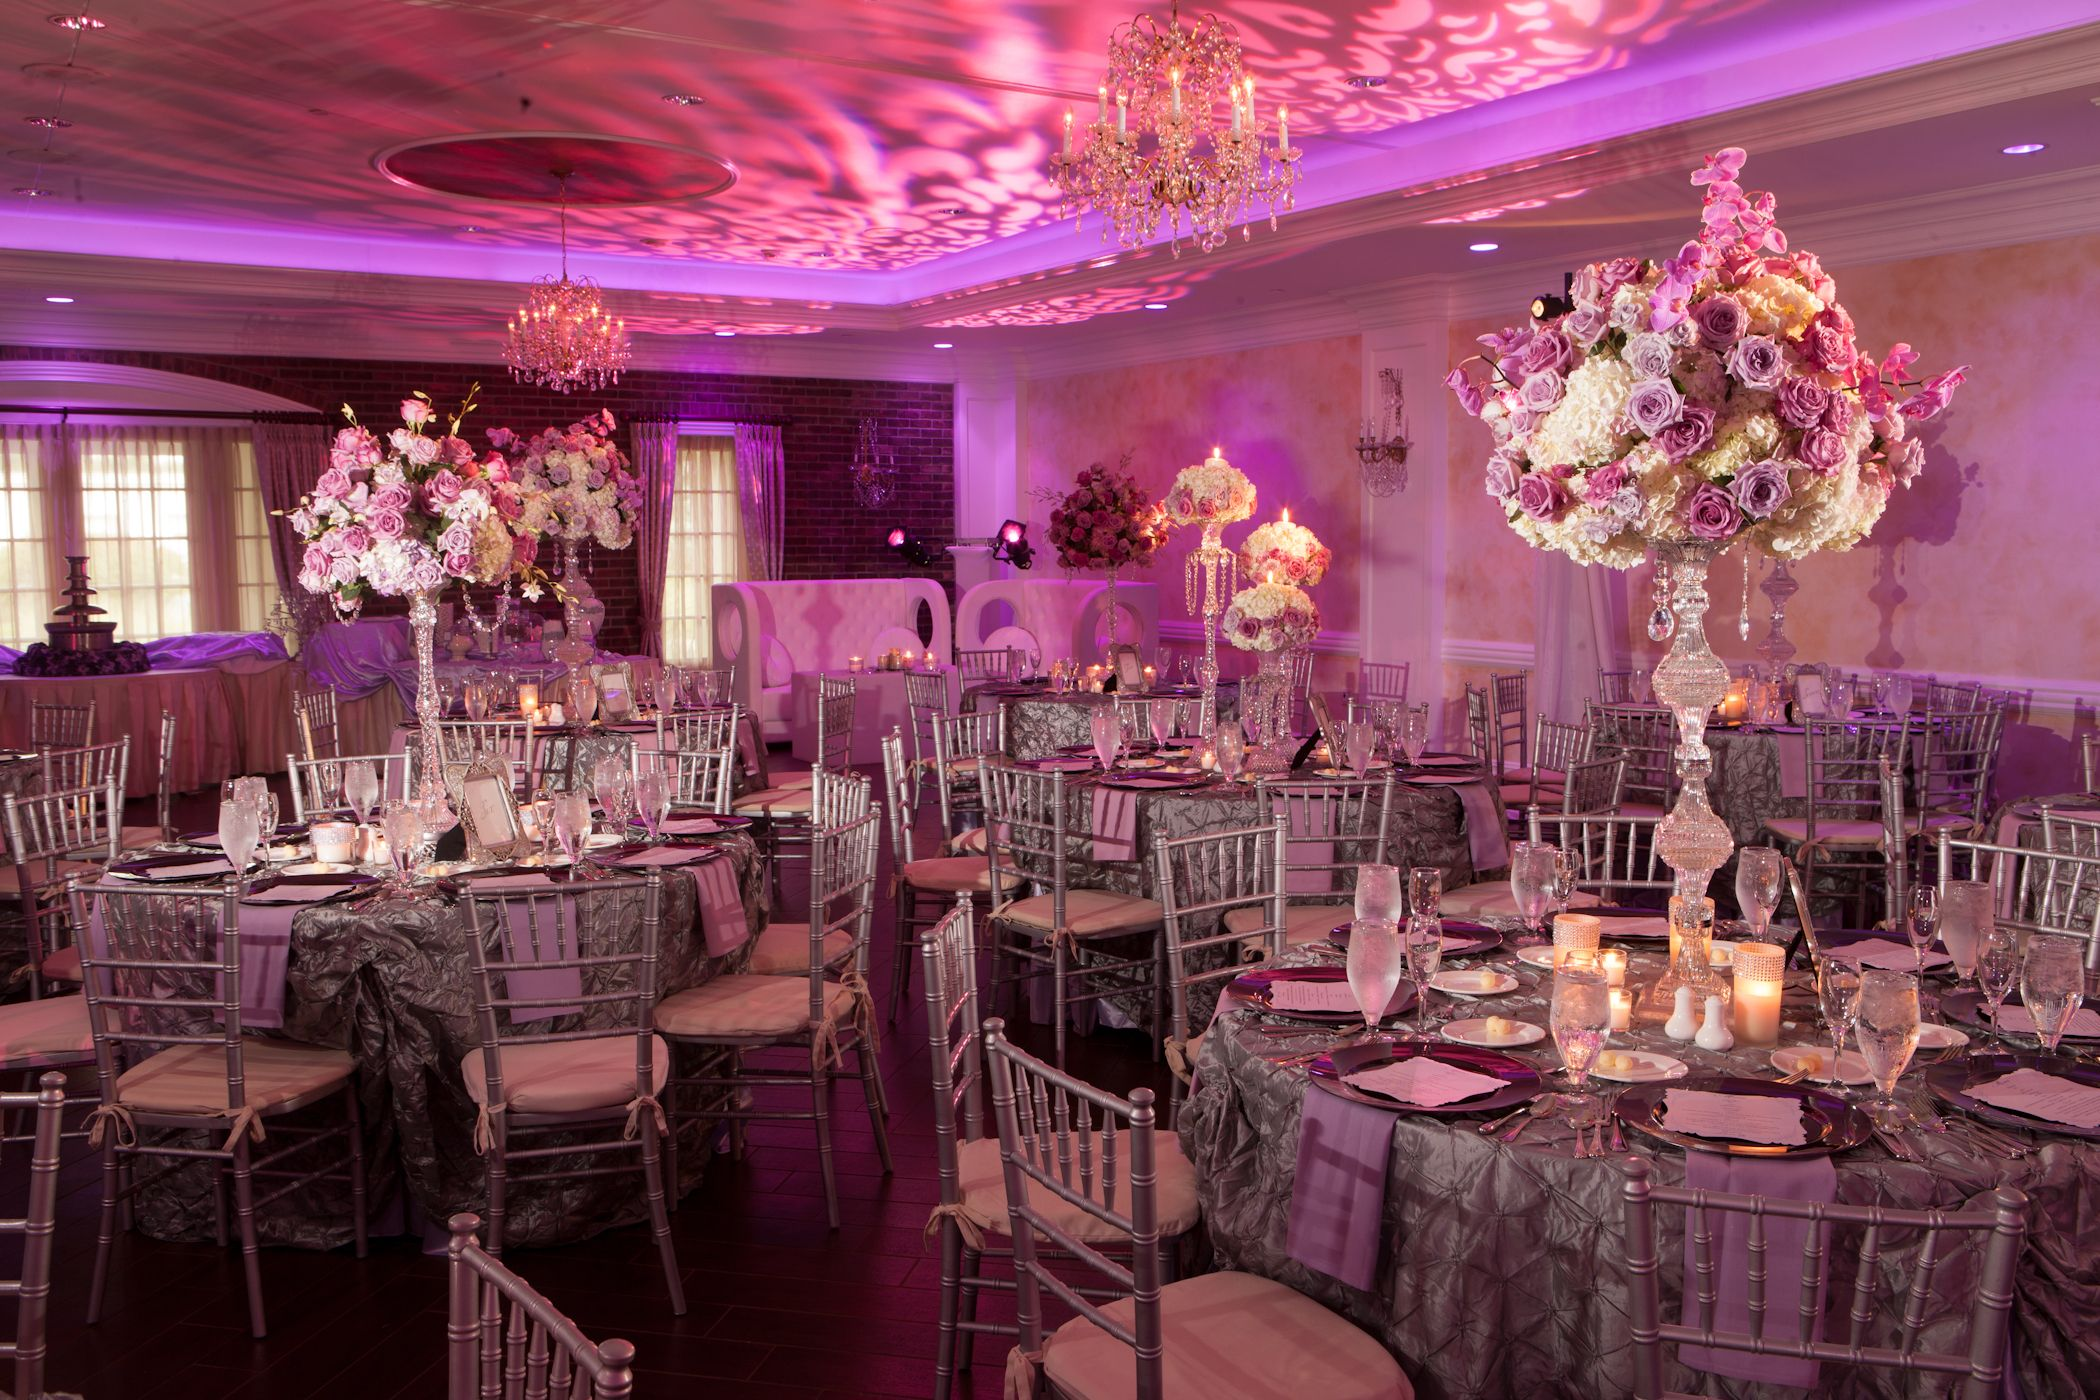 pink, purple + white wedding with textured linens and uplighting ...